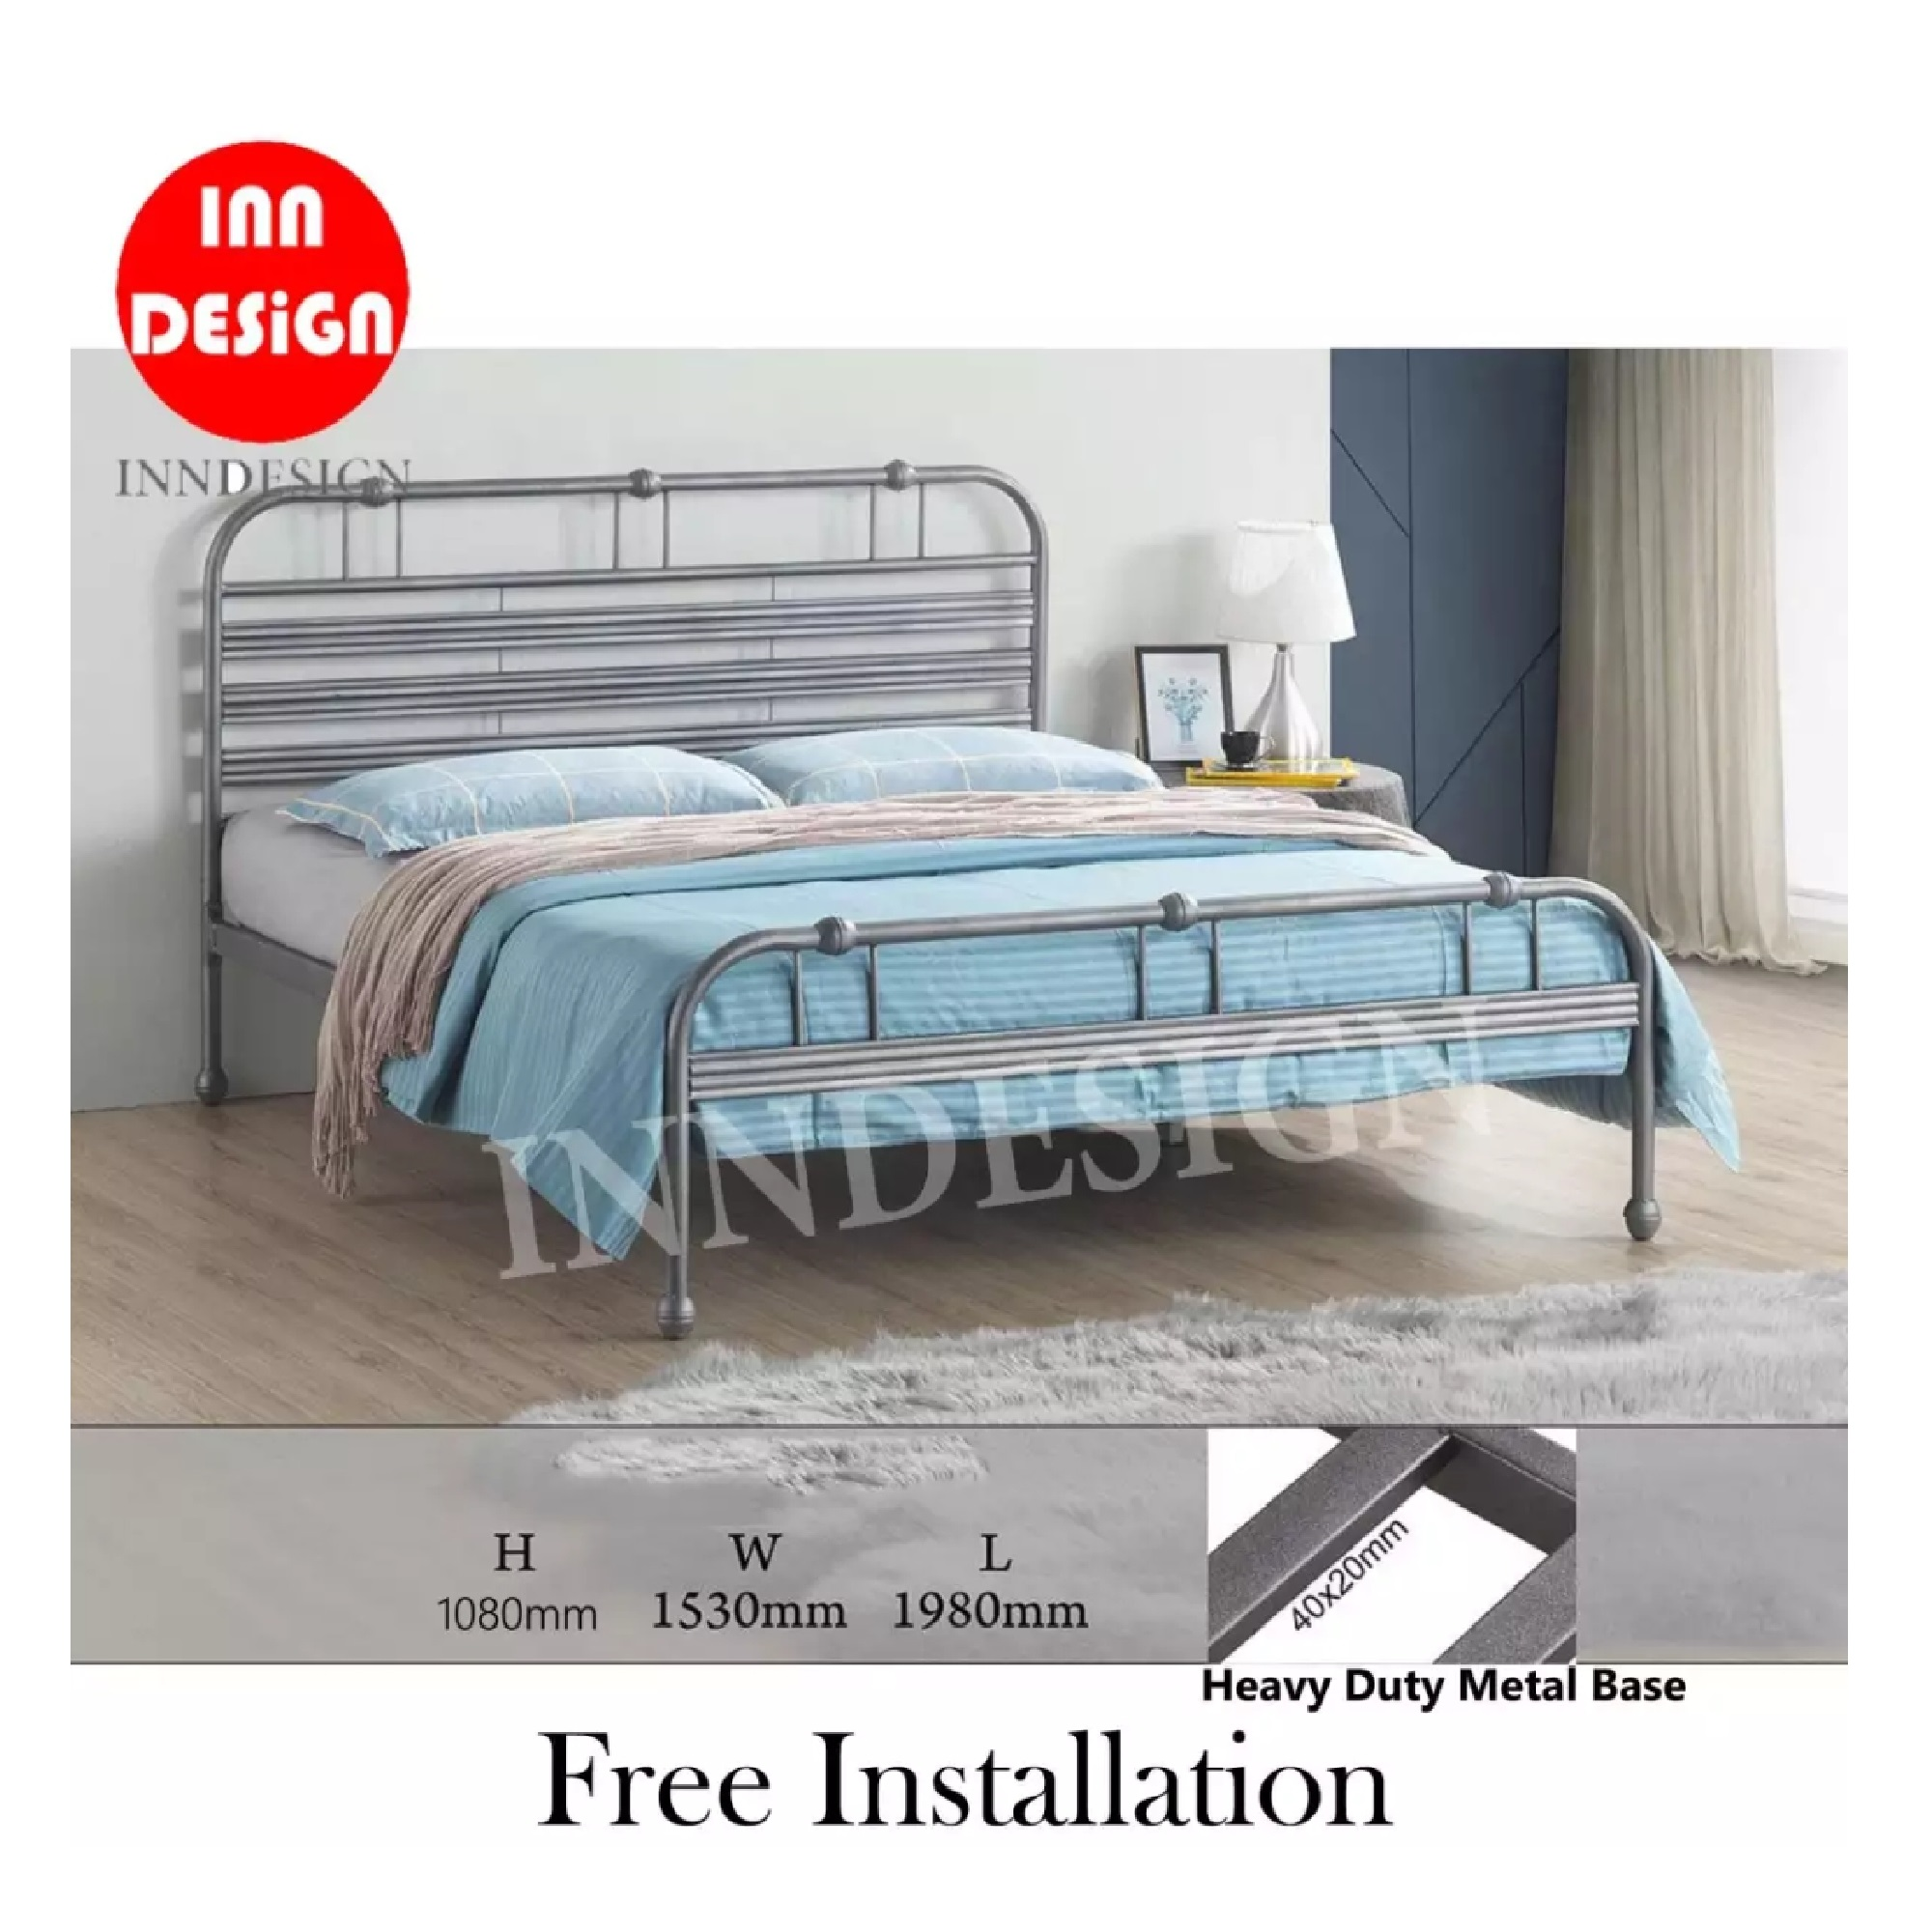 Qano Queen Heavy Duty Metal Bedframe / Bed / Bed frame (Free Delivery and Installation)